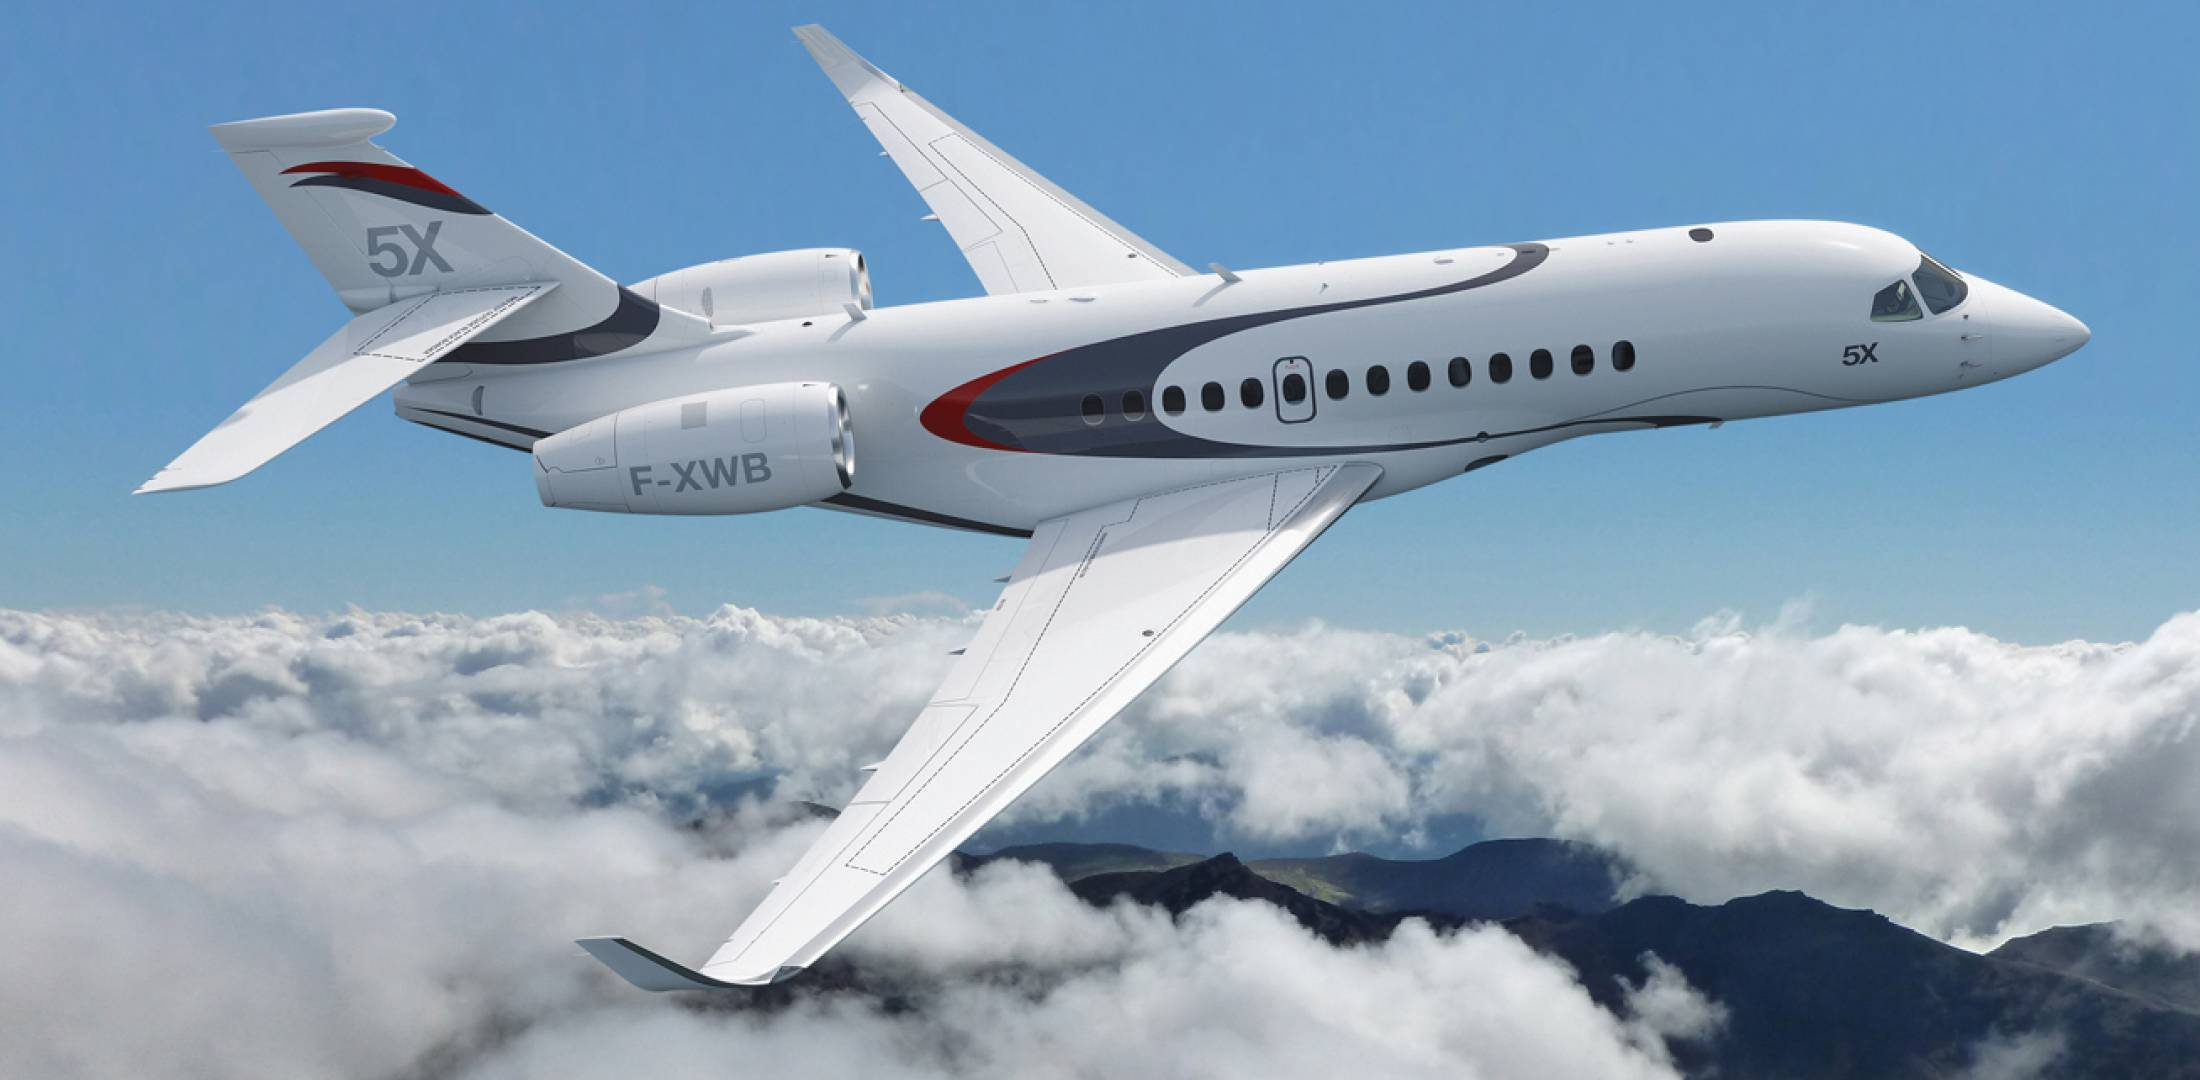 The jet will have a range of up to 5,200 nm (with eight passengers, three crew, NBAA IFR reserves at ISA and full fuel).